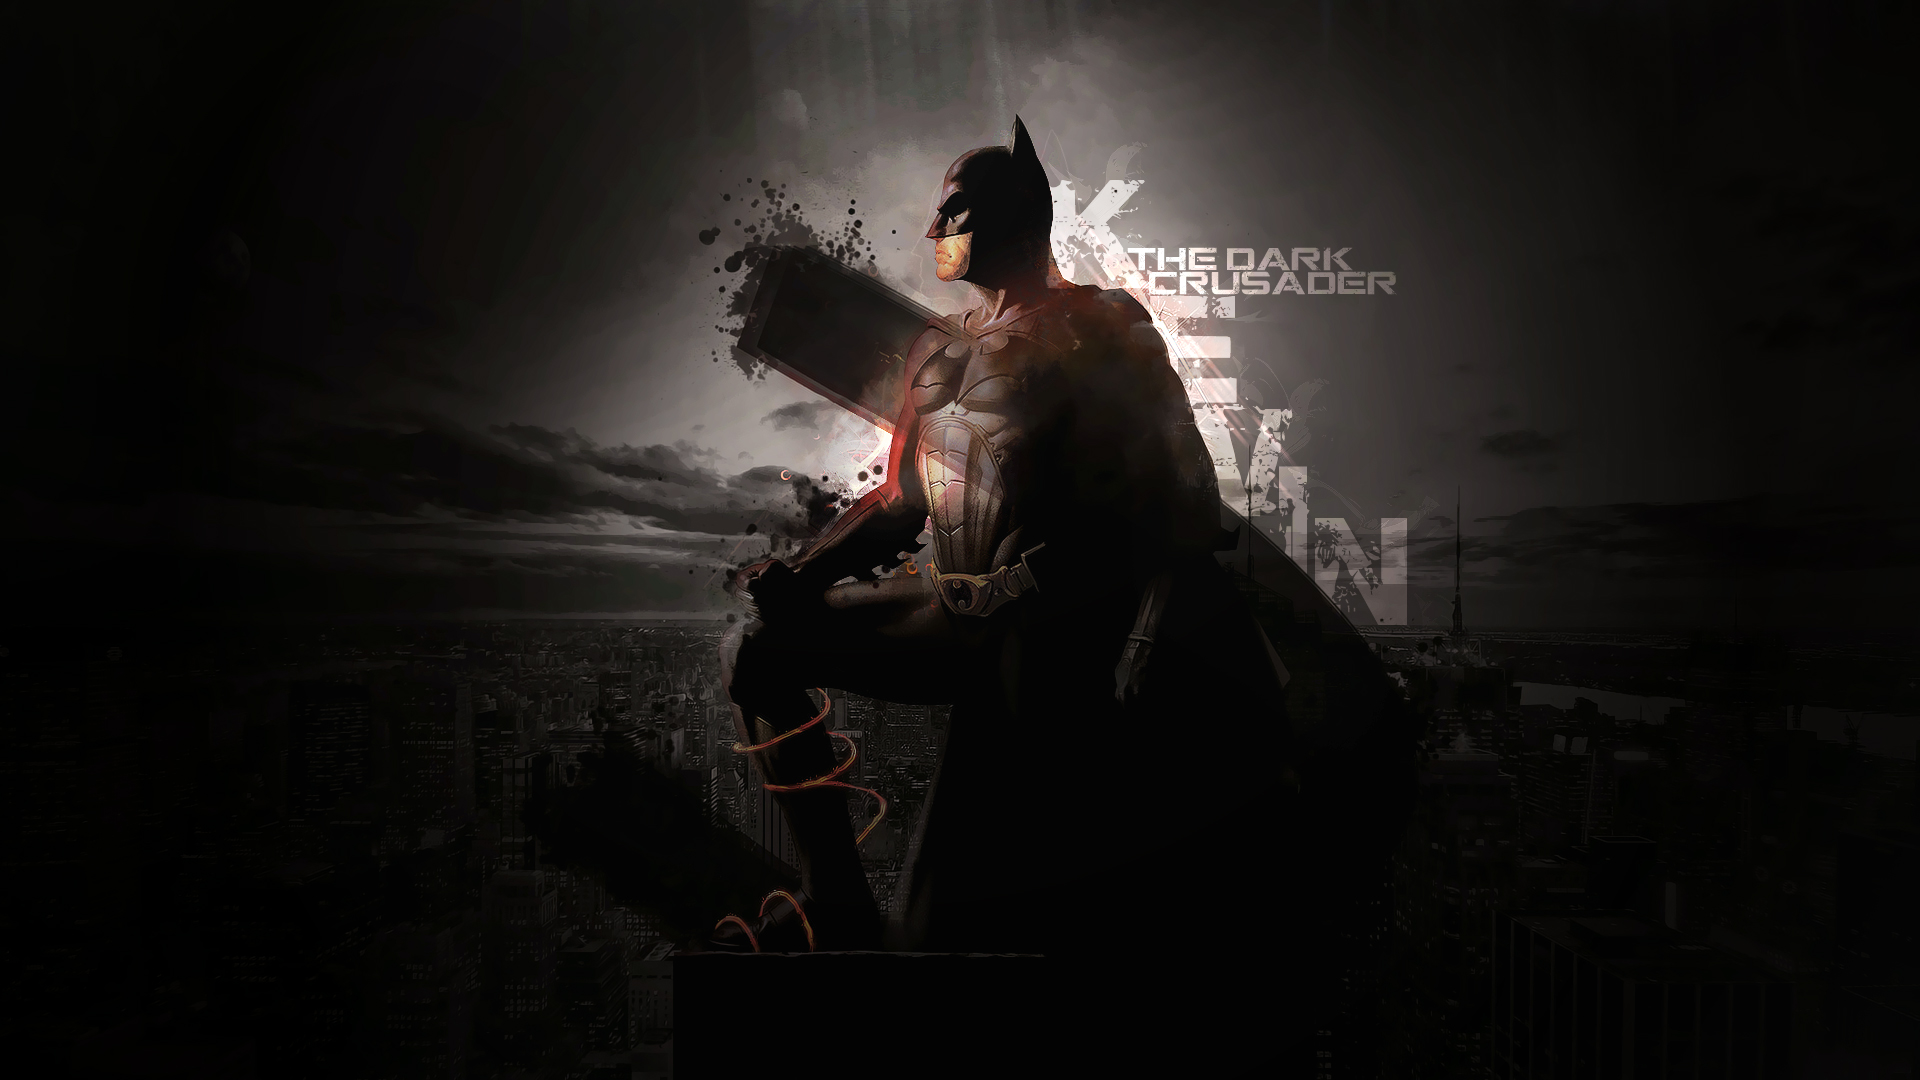 Check this out our new Batman wallpaper Batman wallpapers 1920x1080